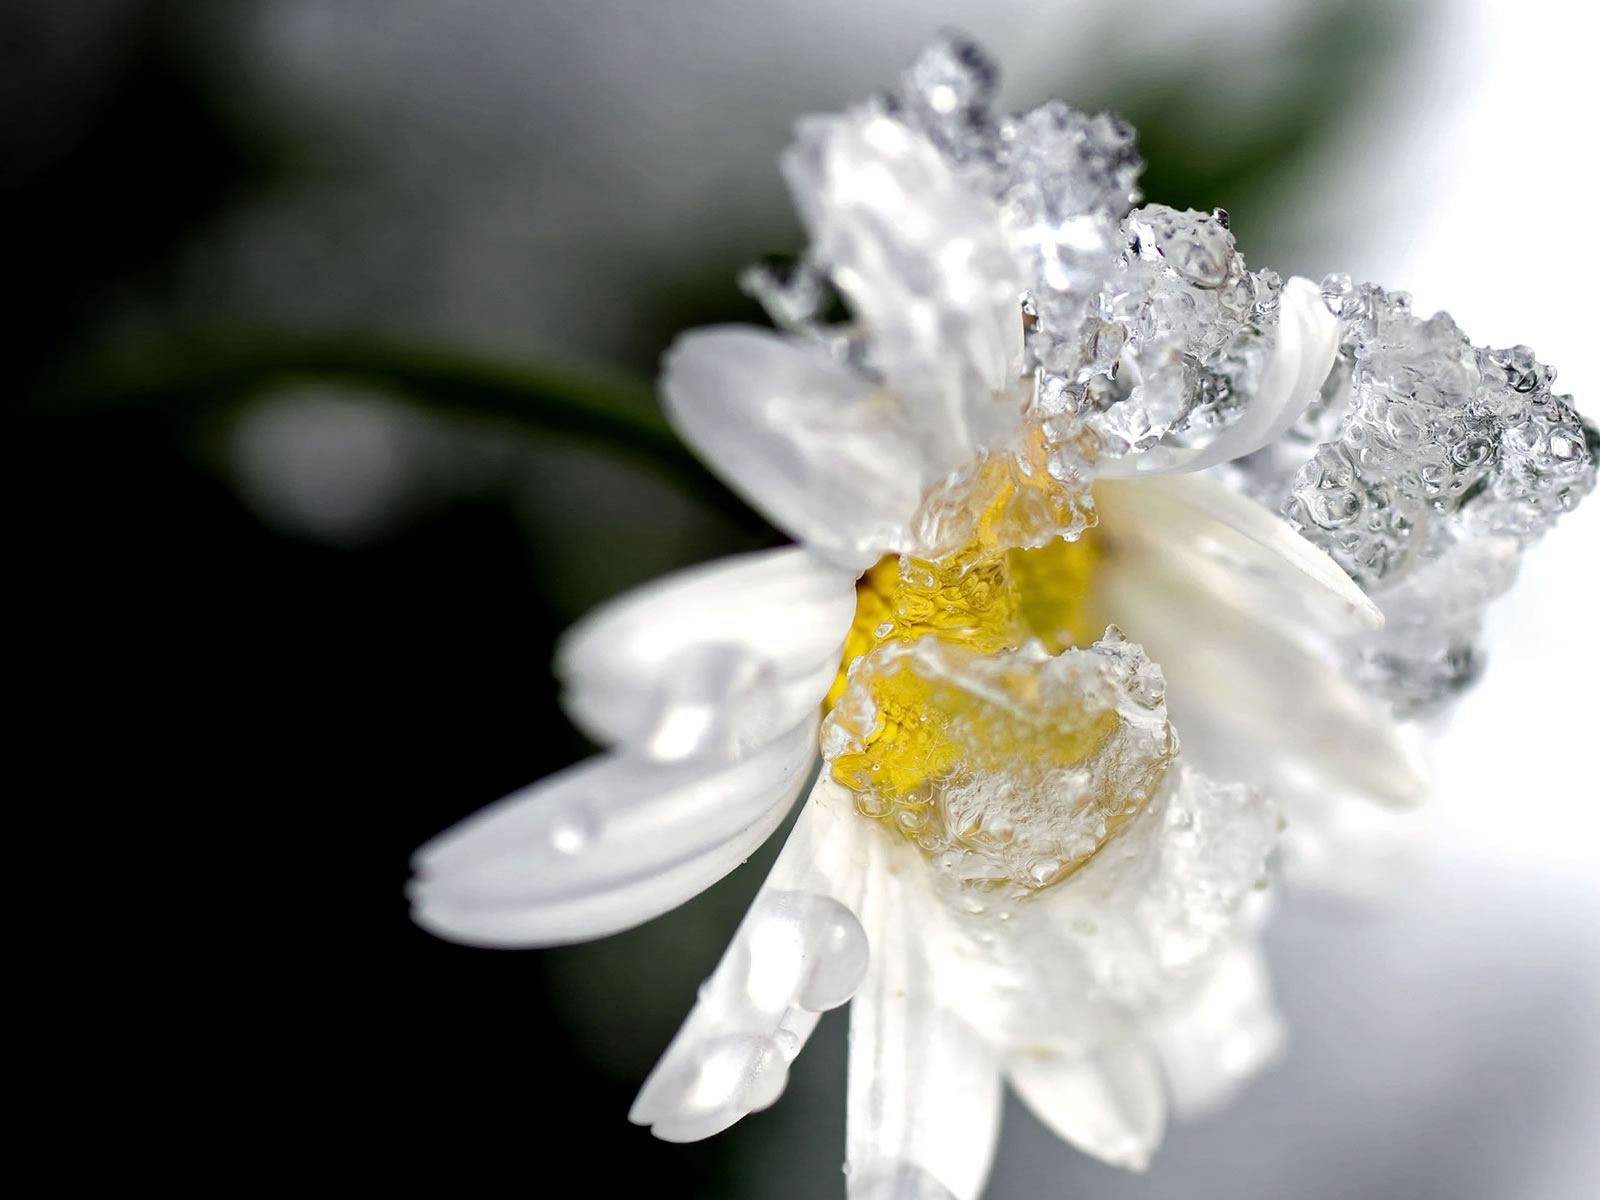 high quality images collection of winter flower iago kiley, Beautiful flower